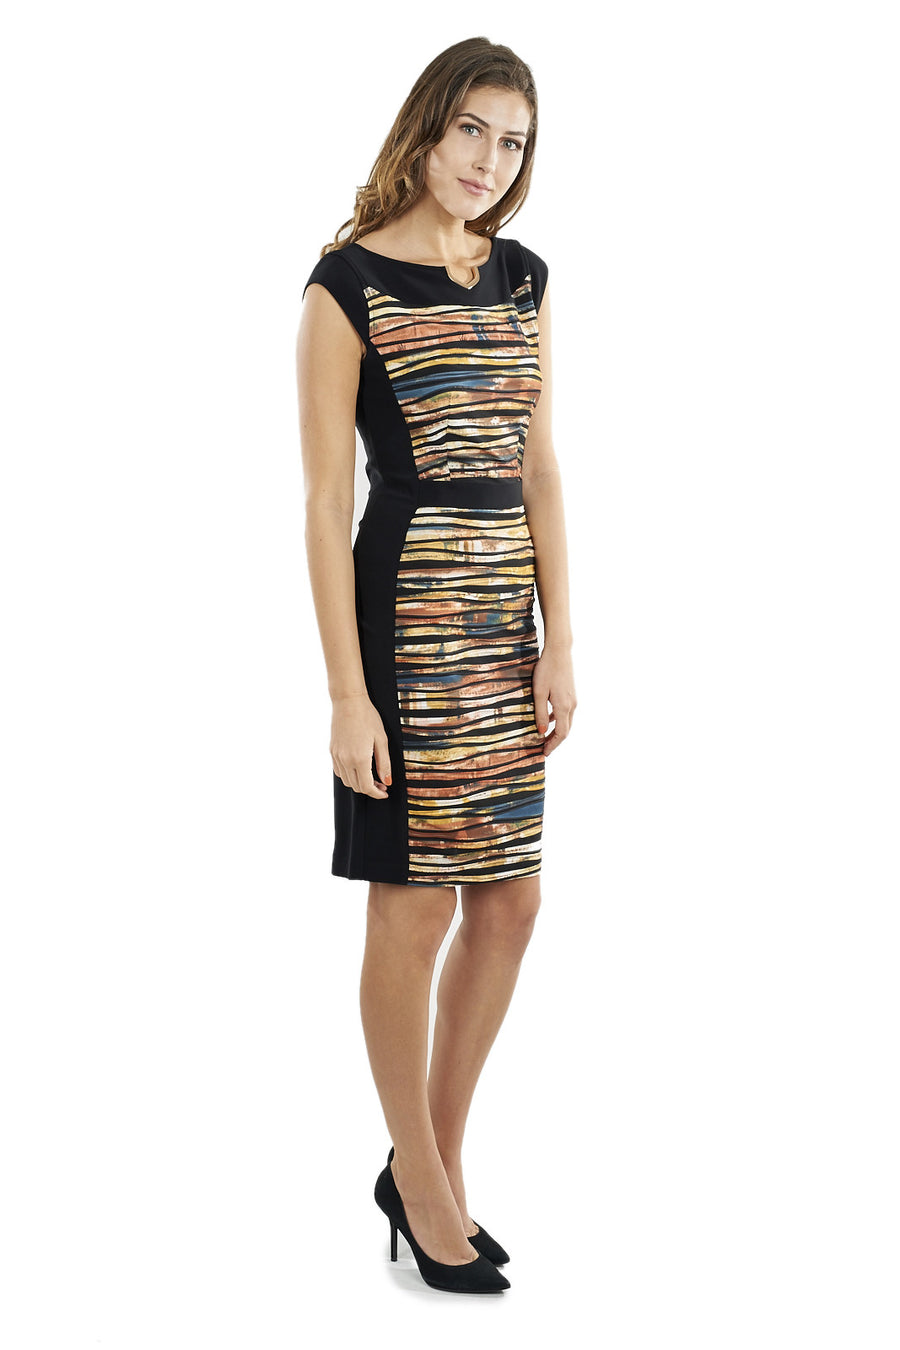 Striped Dress with Horrizontal Fabric Accents